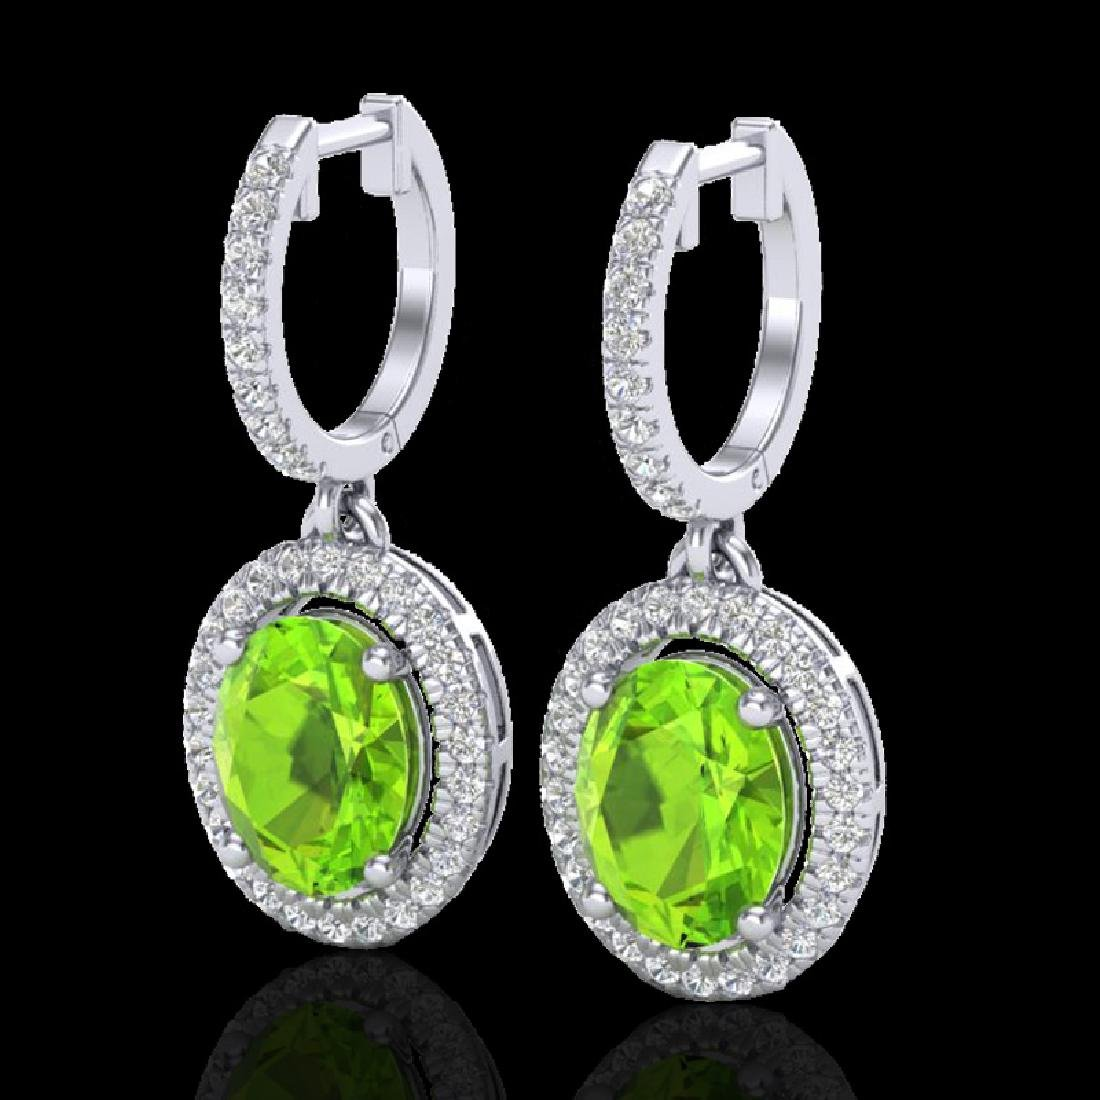 3.75 CTW Peridot & Micro Pave VS/SI Diamond Earrings